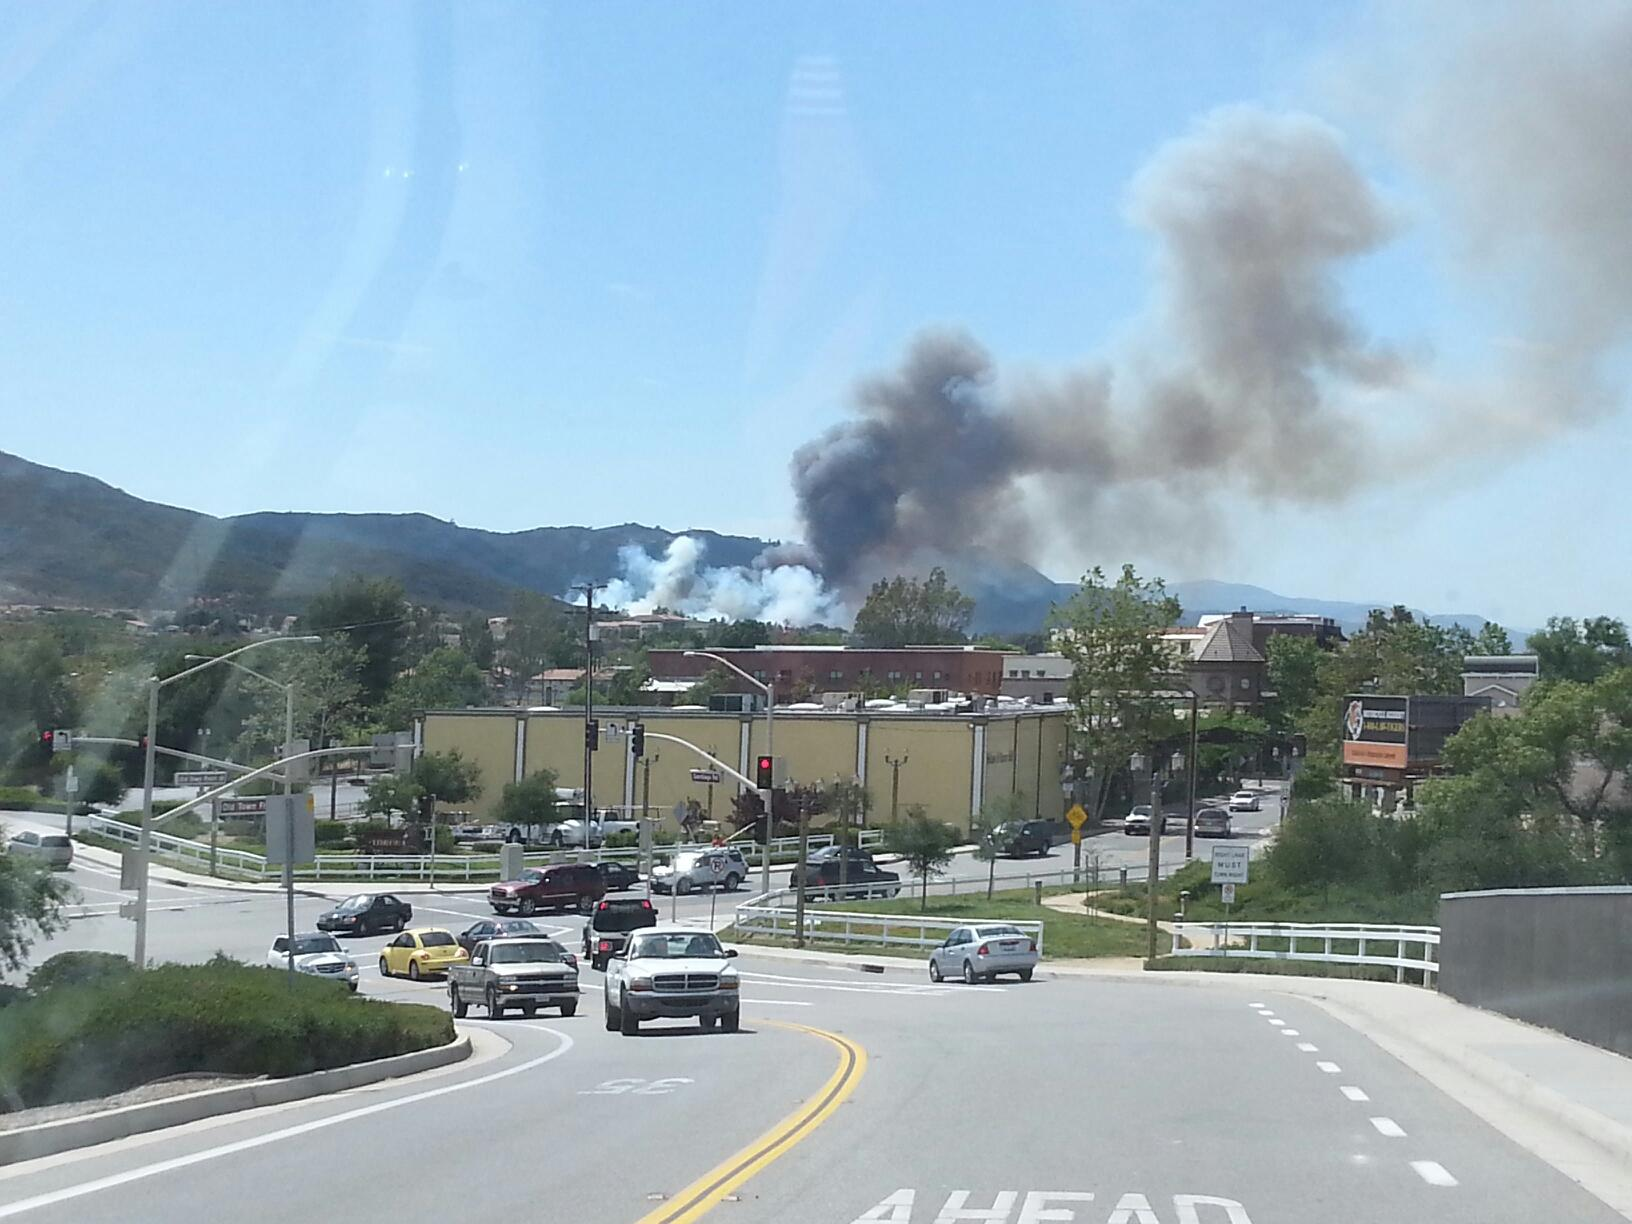 BREAKING NEWS: Fire Breaks Out in Hills Above Temecula